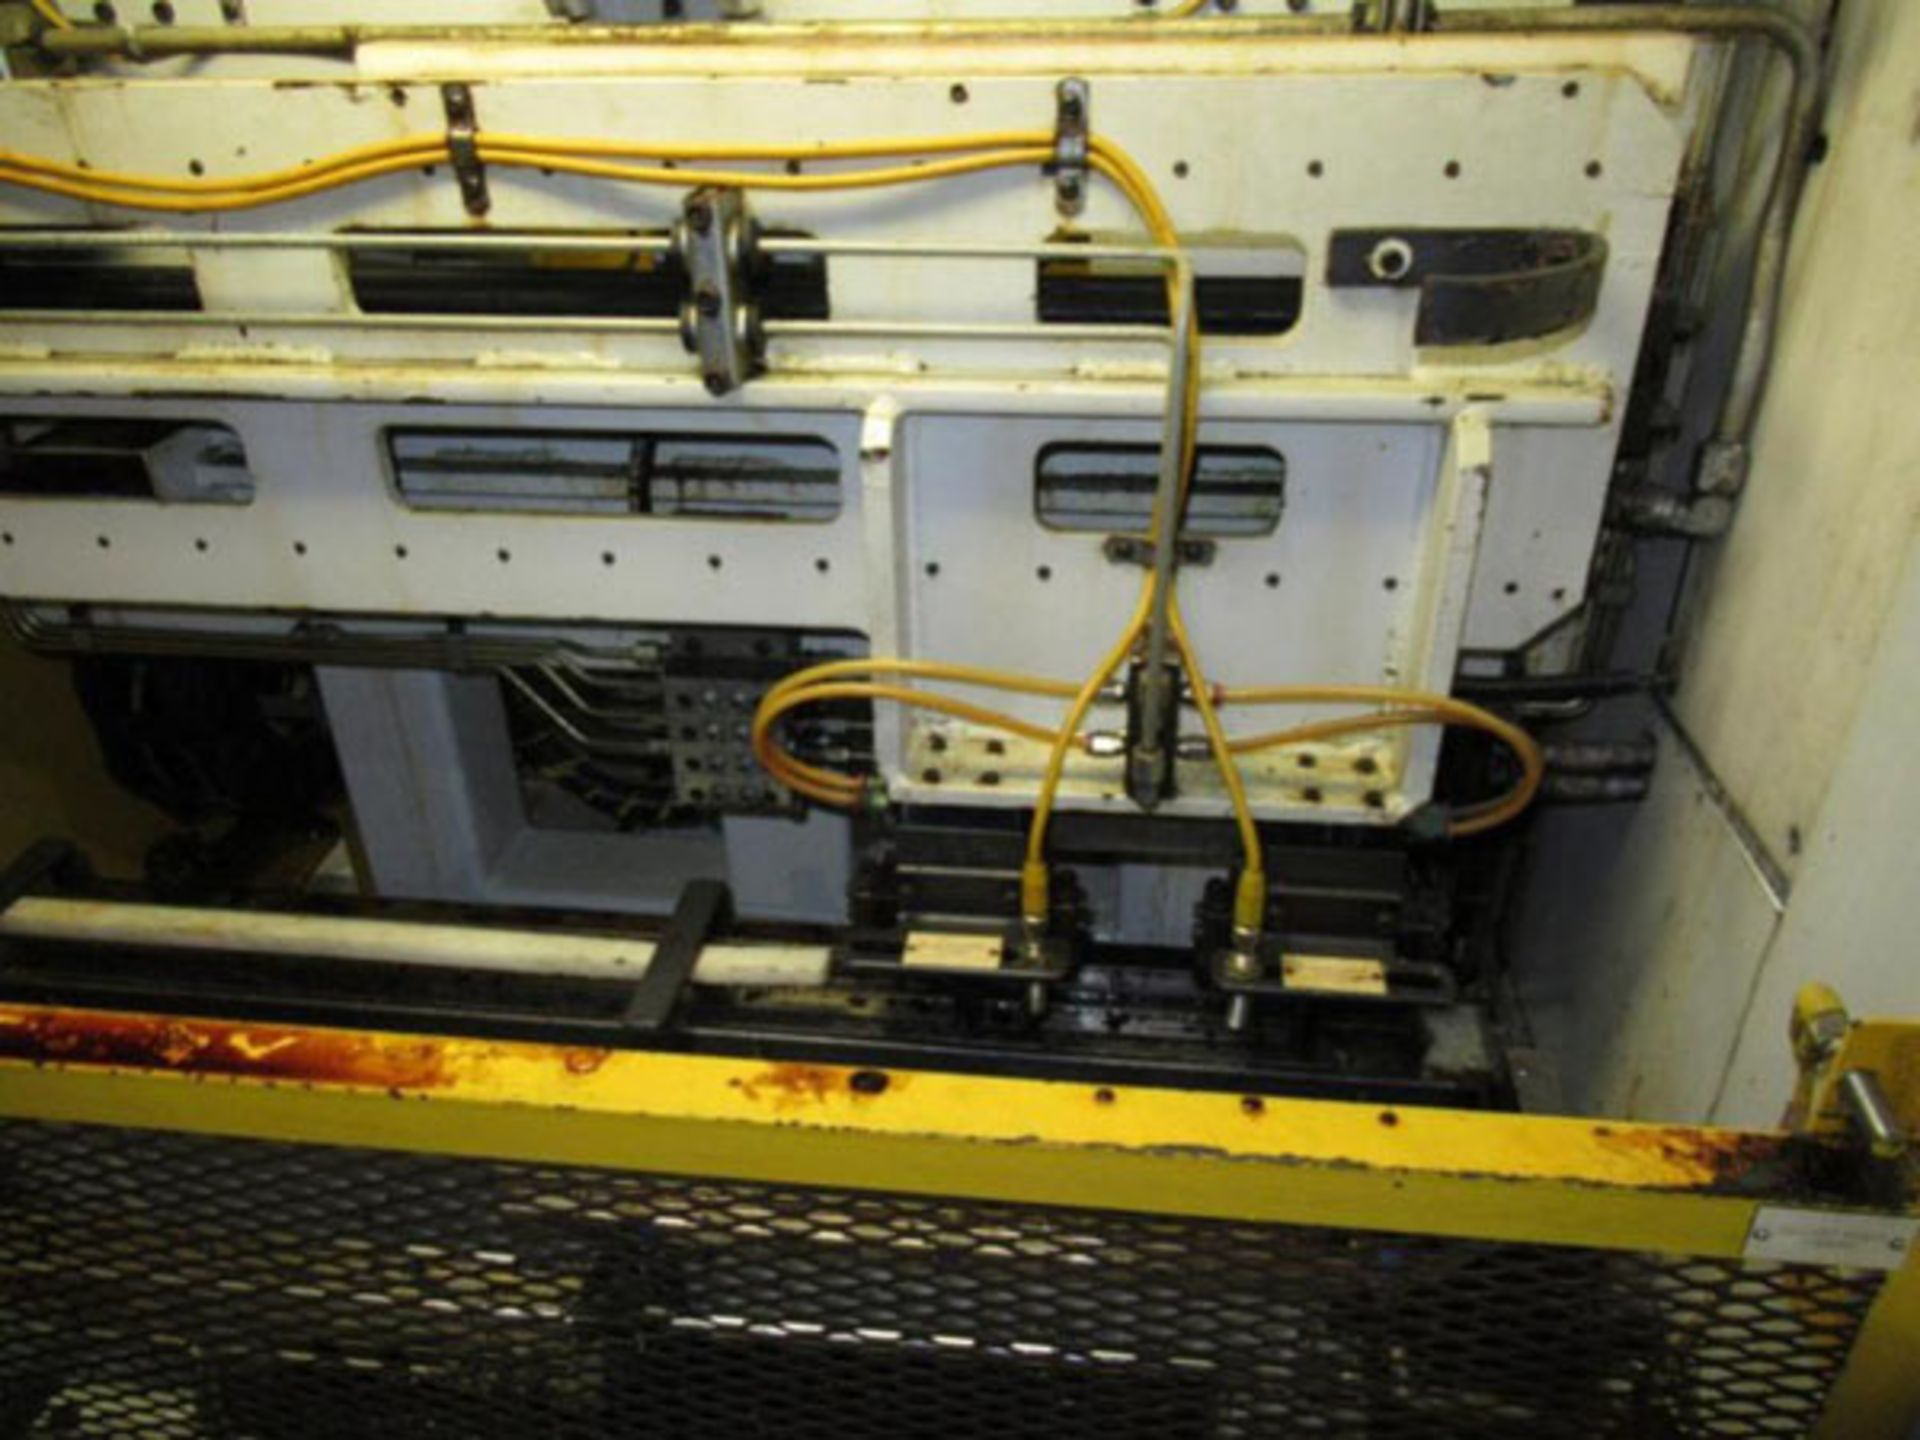 "Lot 9A - 2011 American CNC Vertical Broaching Machine | 15 Ton x 48"", Mdl: 15x48VTU, S/N: 104918 - 8783P"